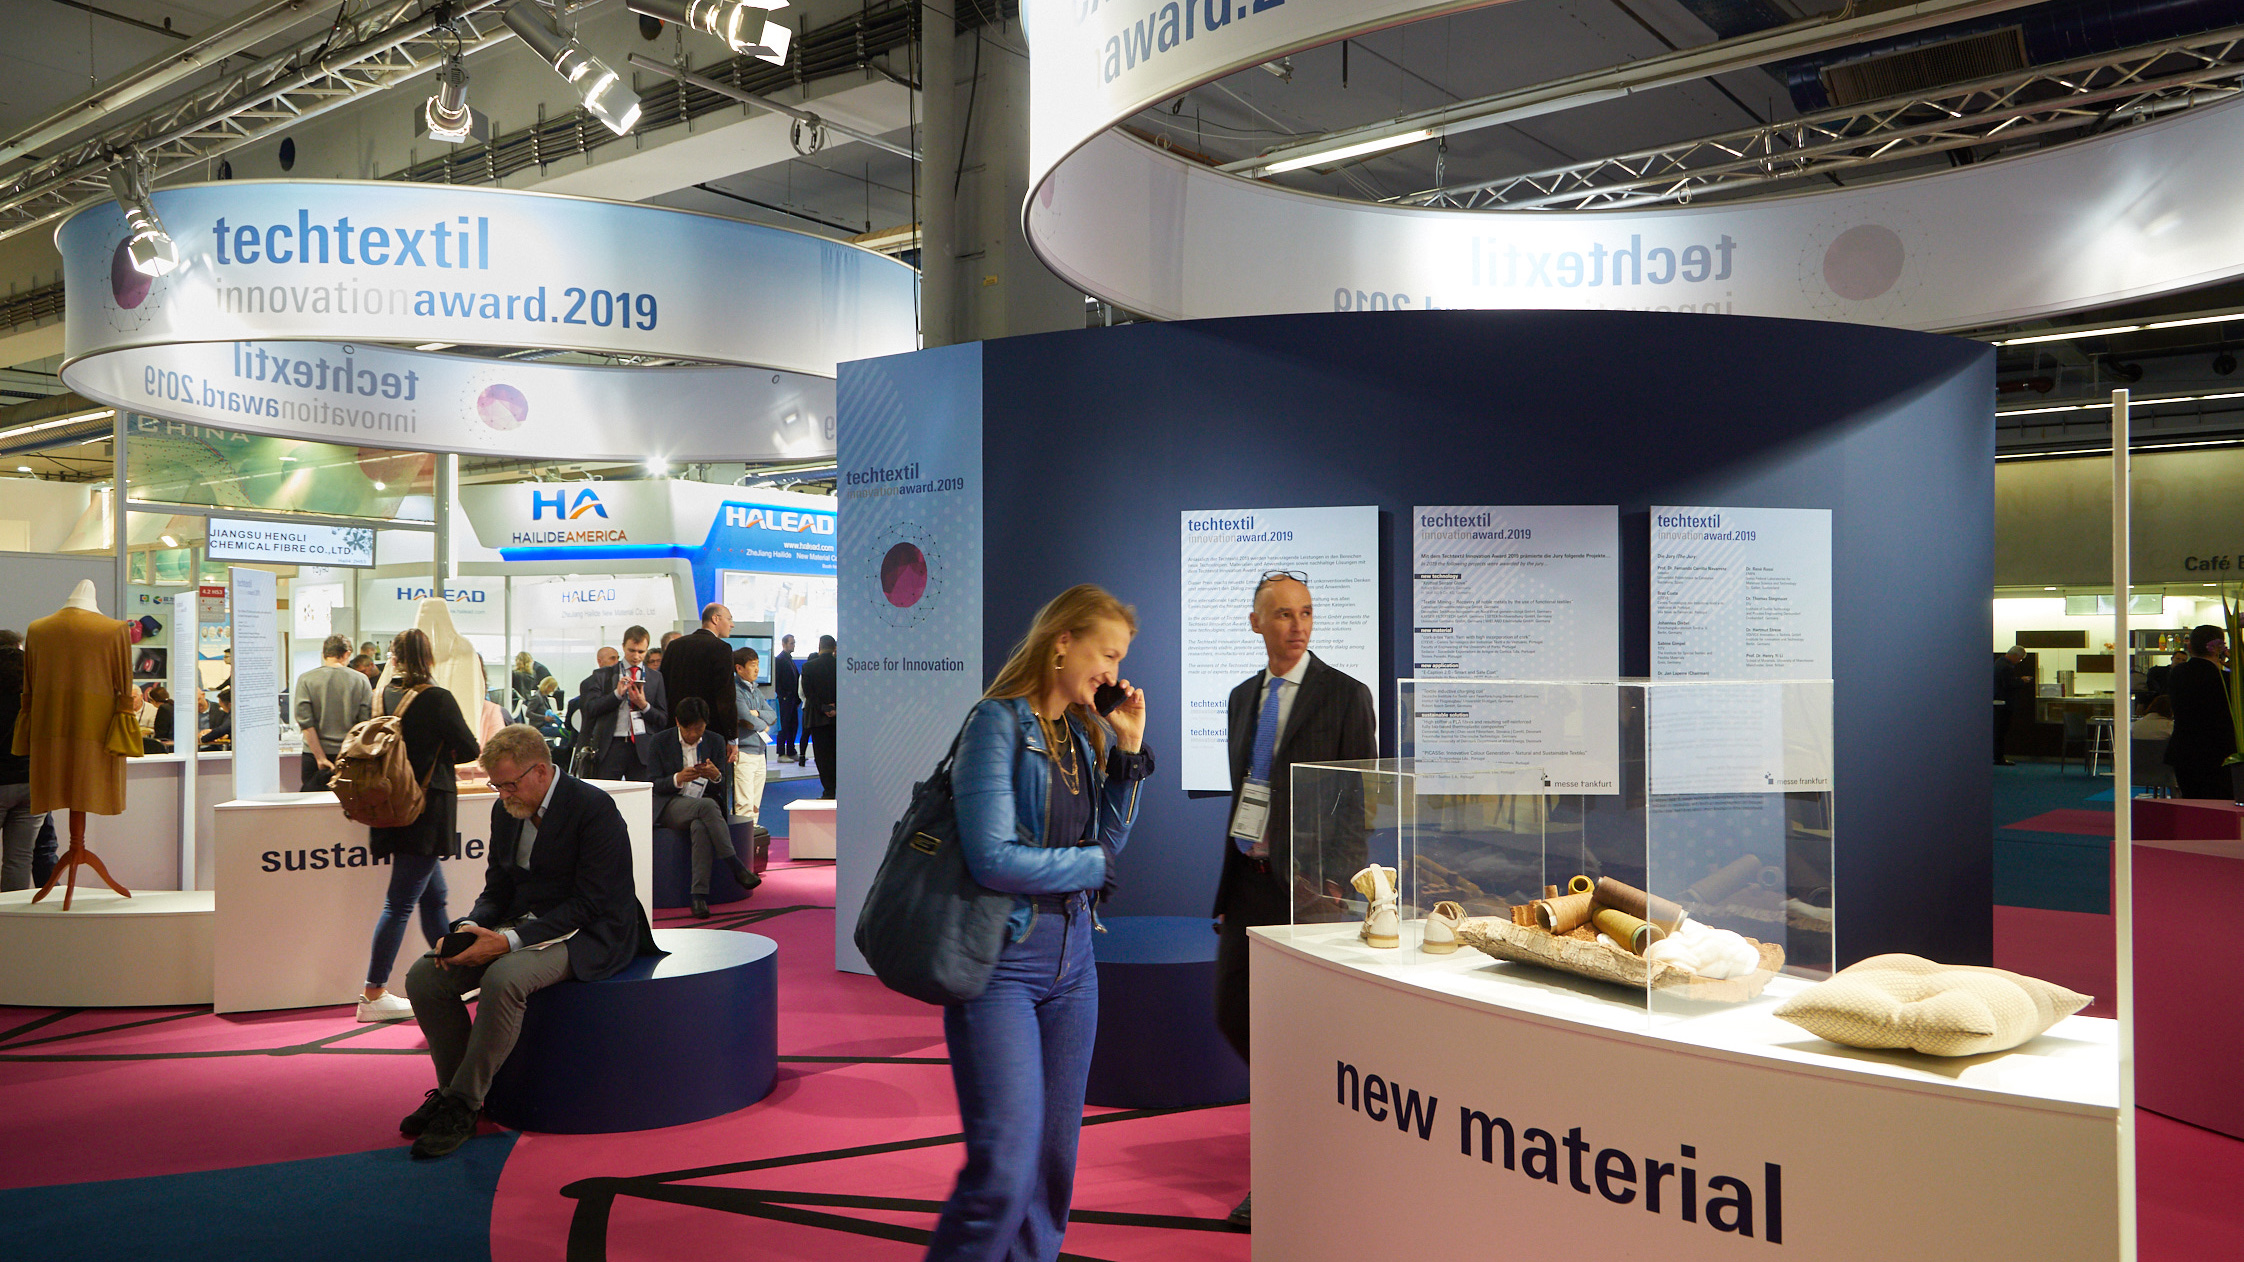 Techtextil Forum